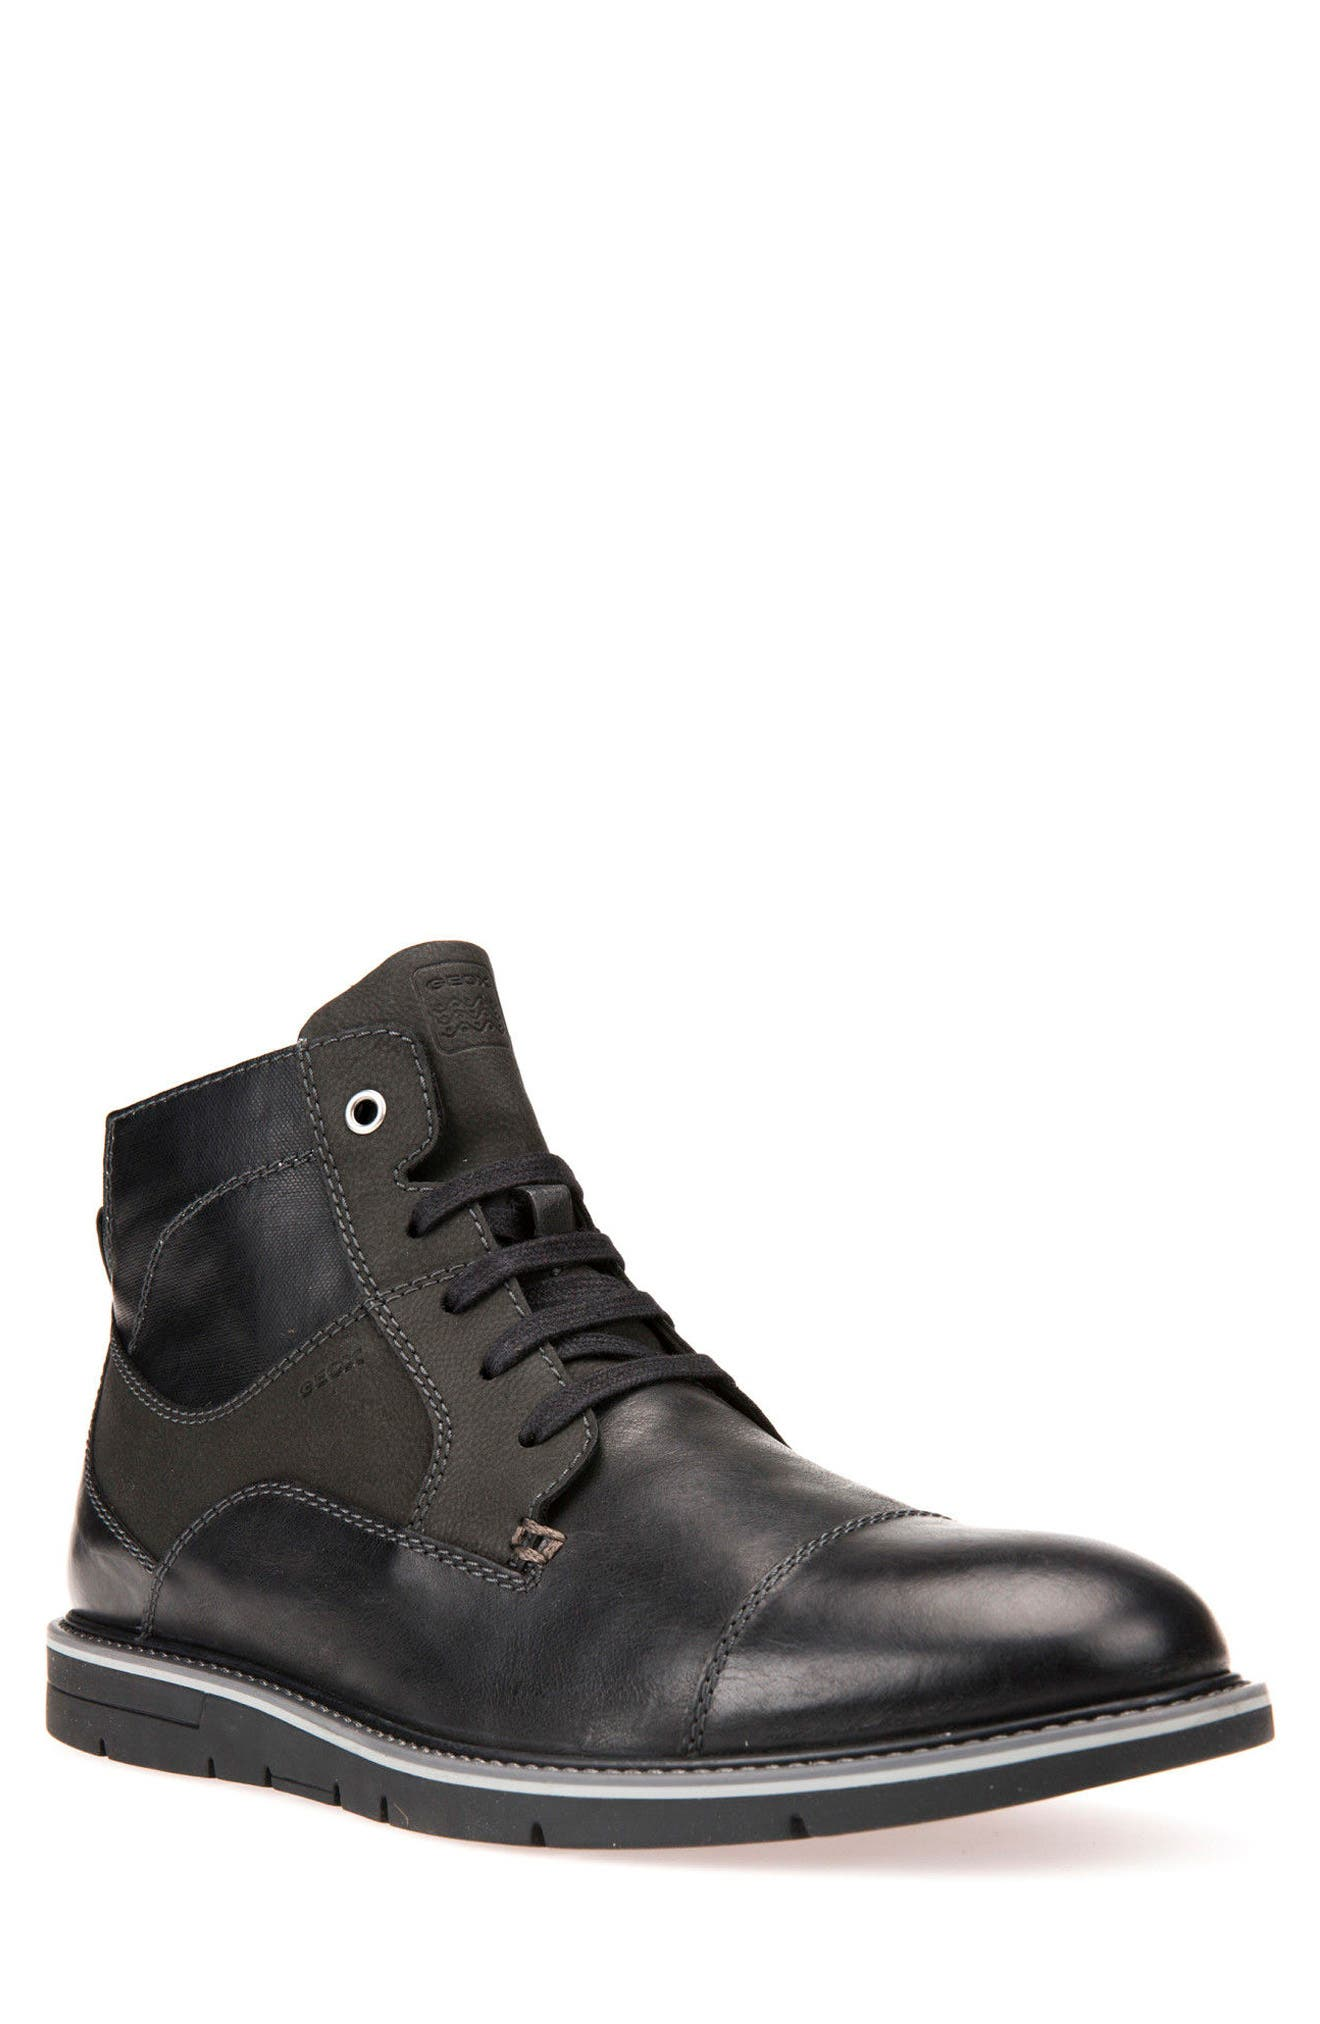 Muvet 5 Cap Toe Boot,                         Main,                         color, 001